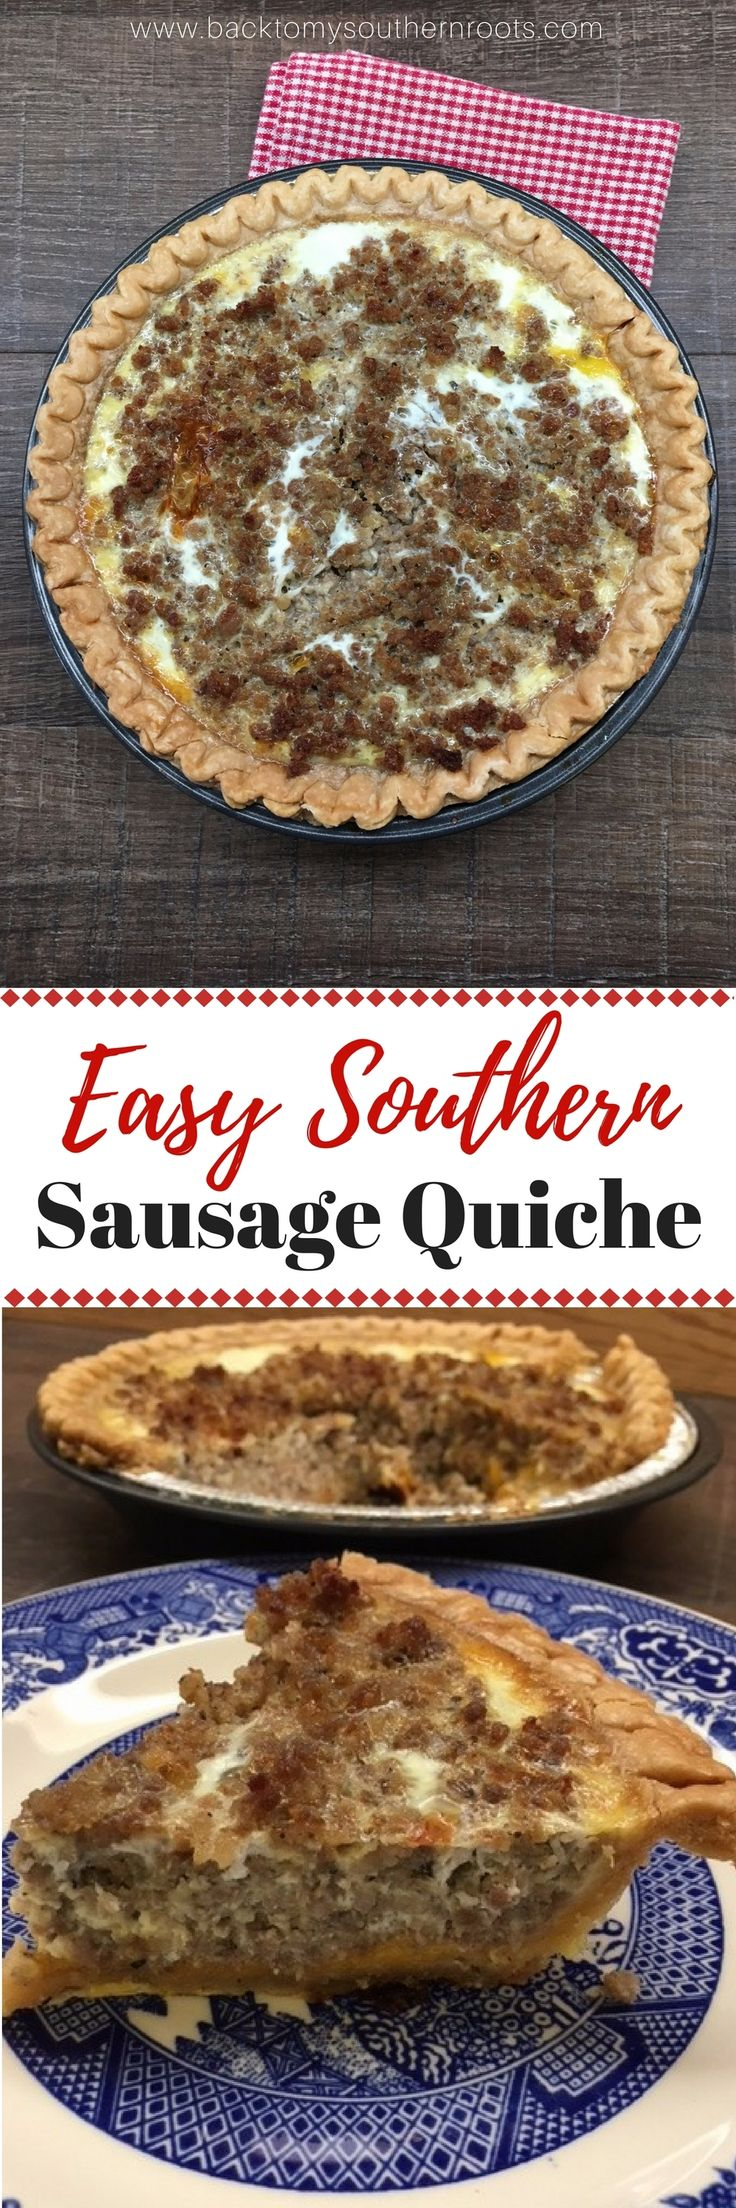 I love this recipe for Easy Southern Sausage Quiche. It's a filling meal that will work great on Thanksgiving or Christmas morning. via @juliepollittbacktomysouthernroots